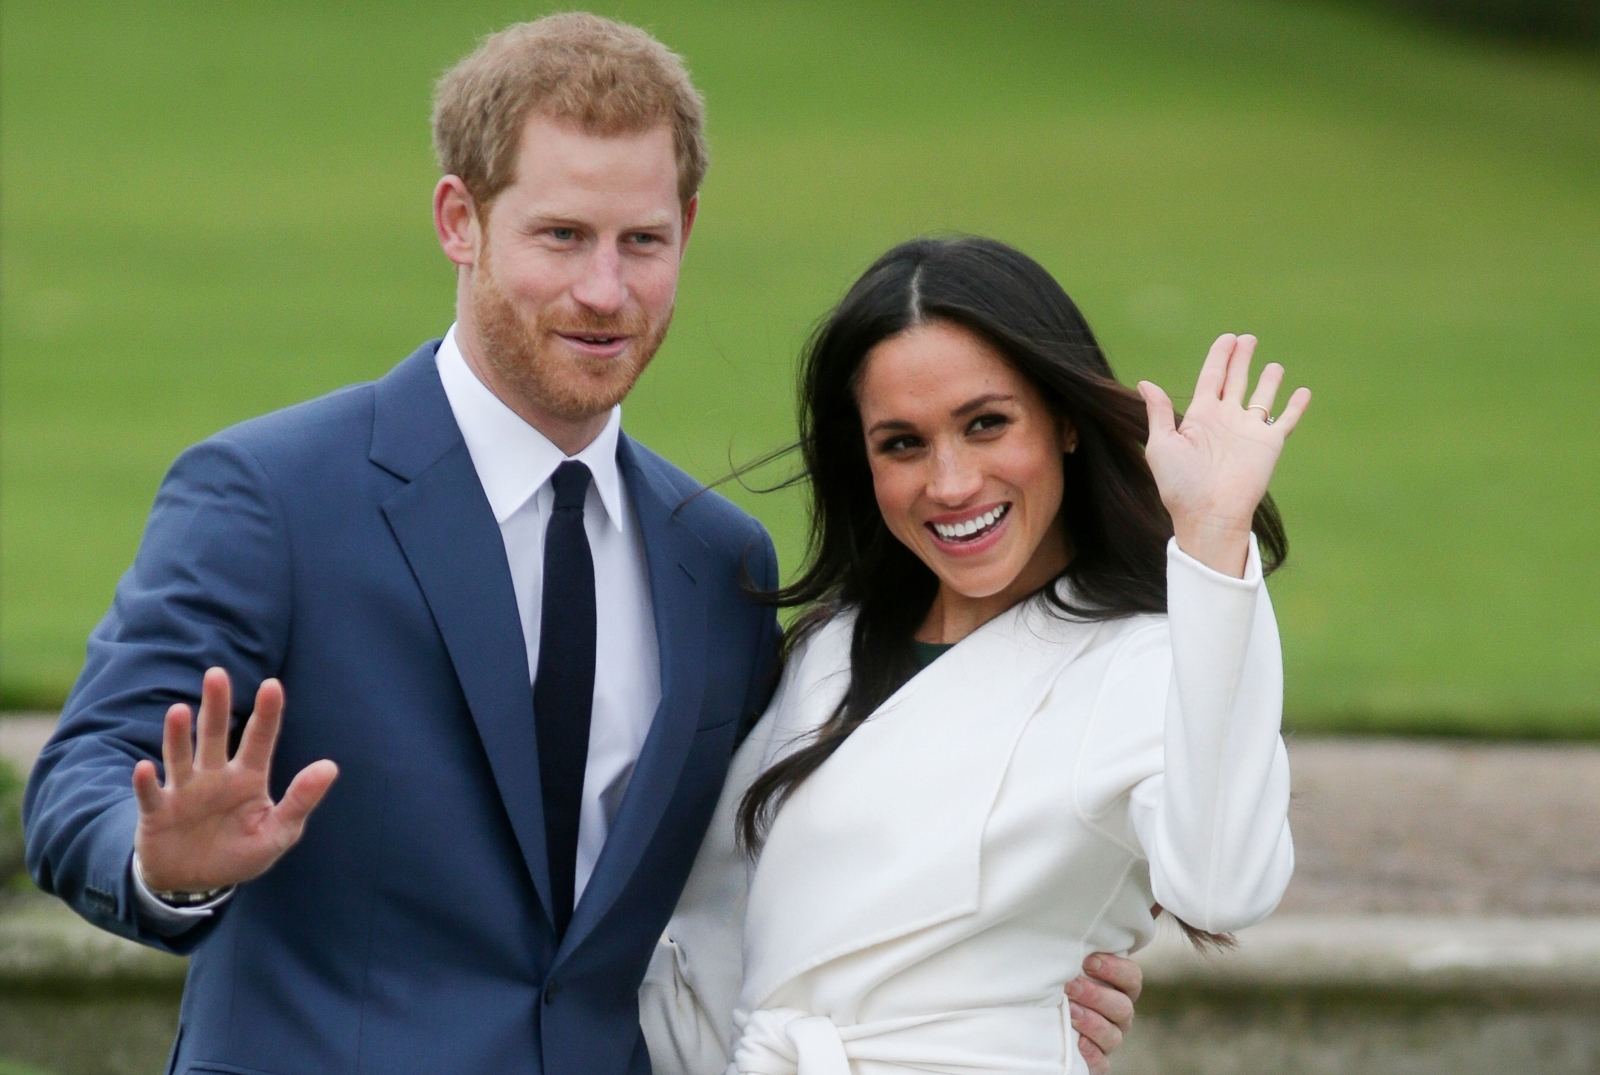 Will Prince Harry and Meghan Markle's royal wedding date be a Bank Holiday?